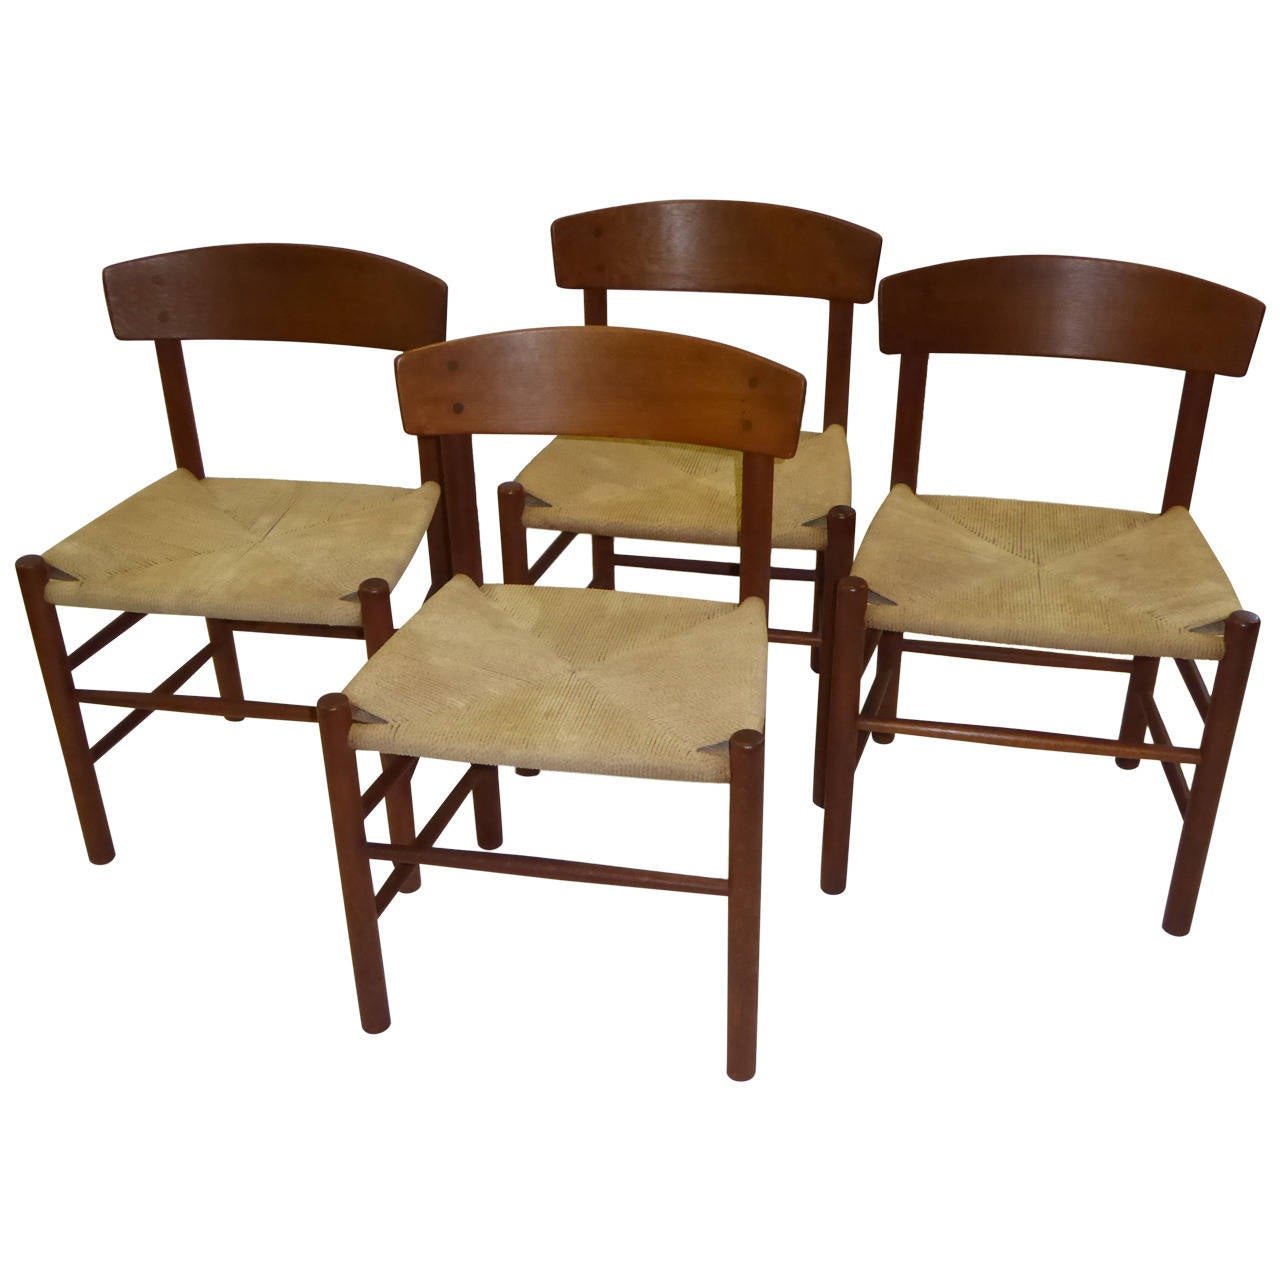 Perfect 1940s Børge Morgensen J39 Chairs From FDB Mobler Denmark 1